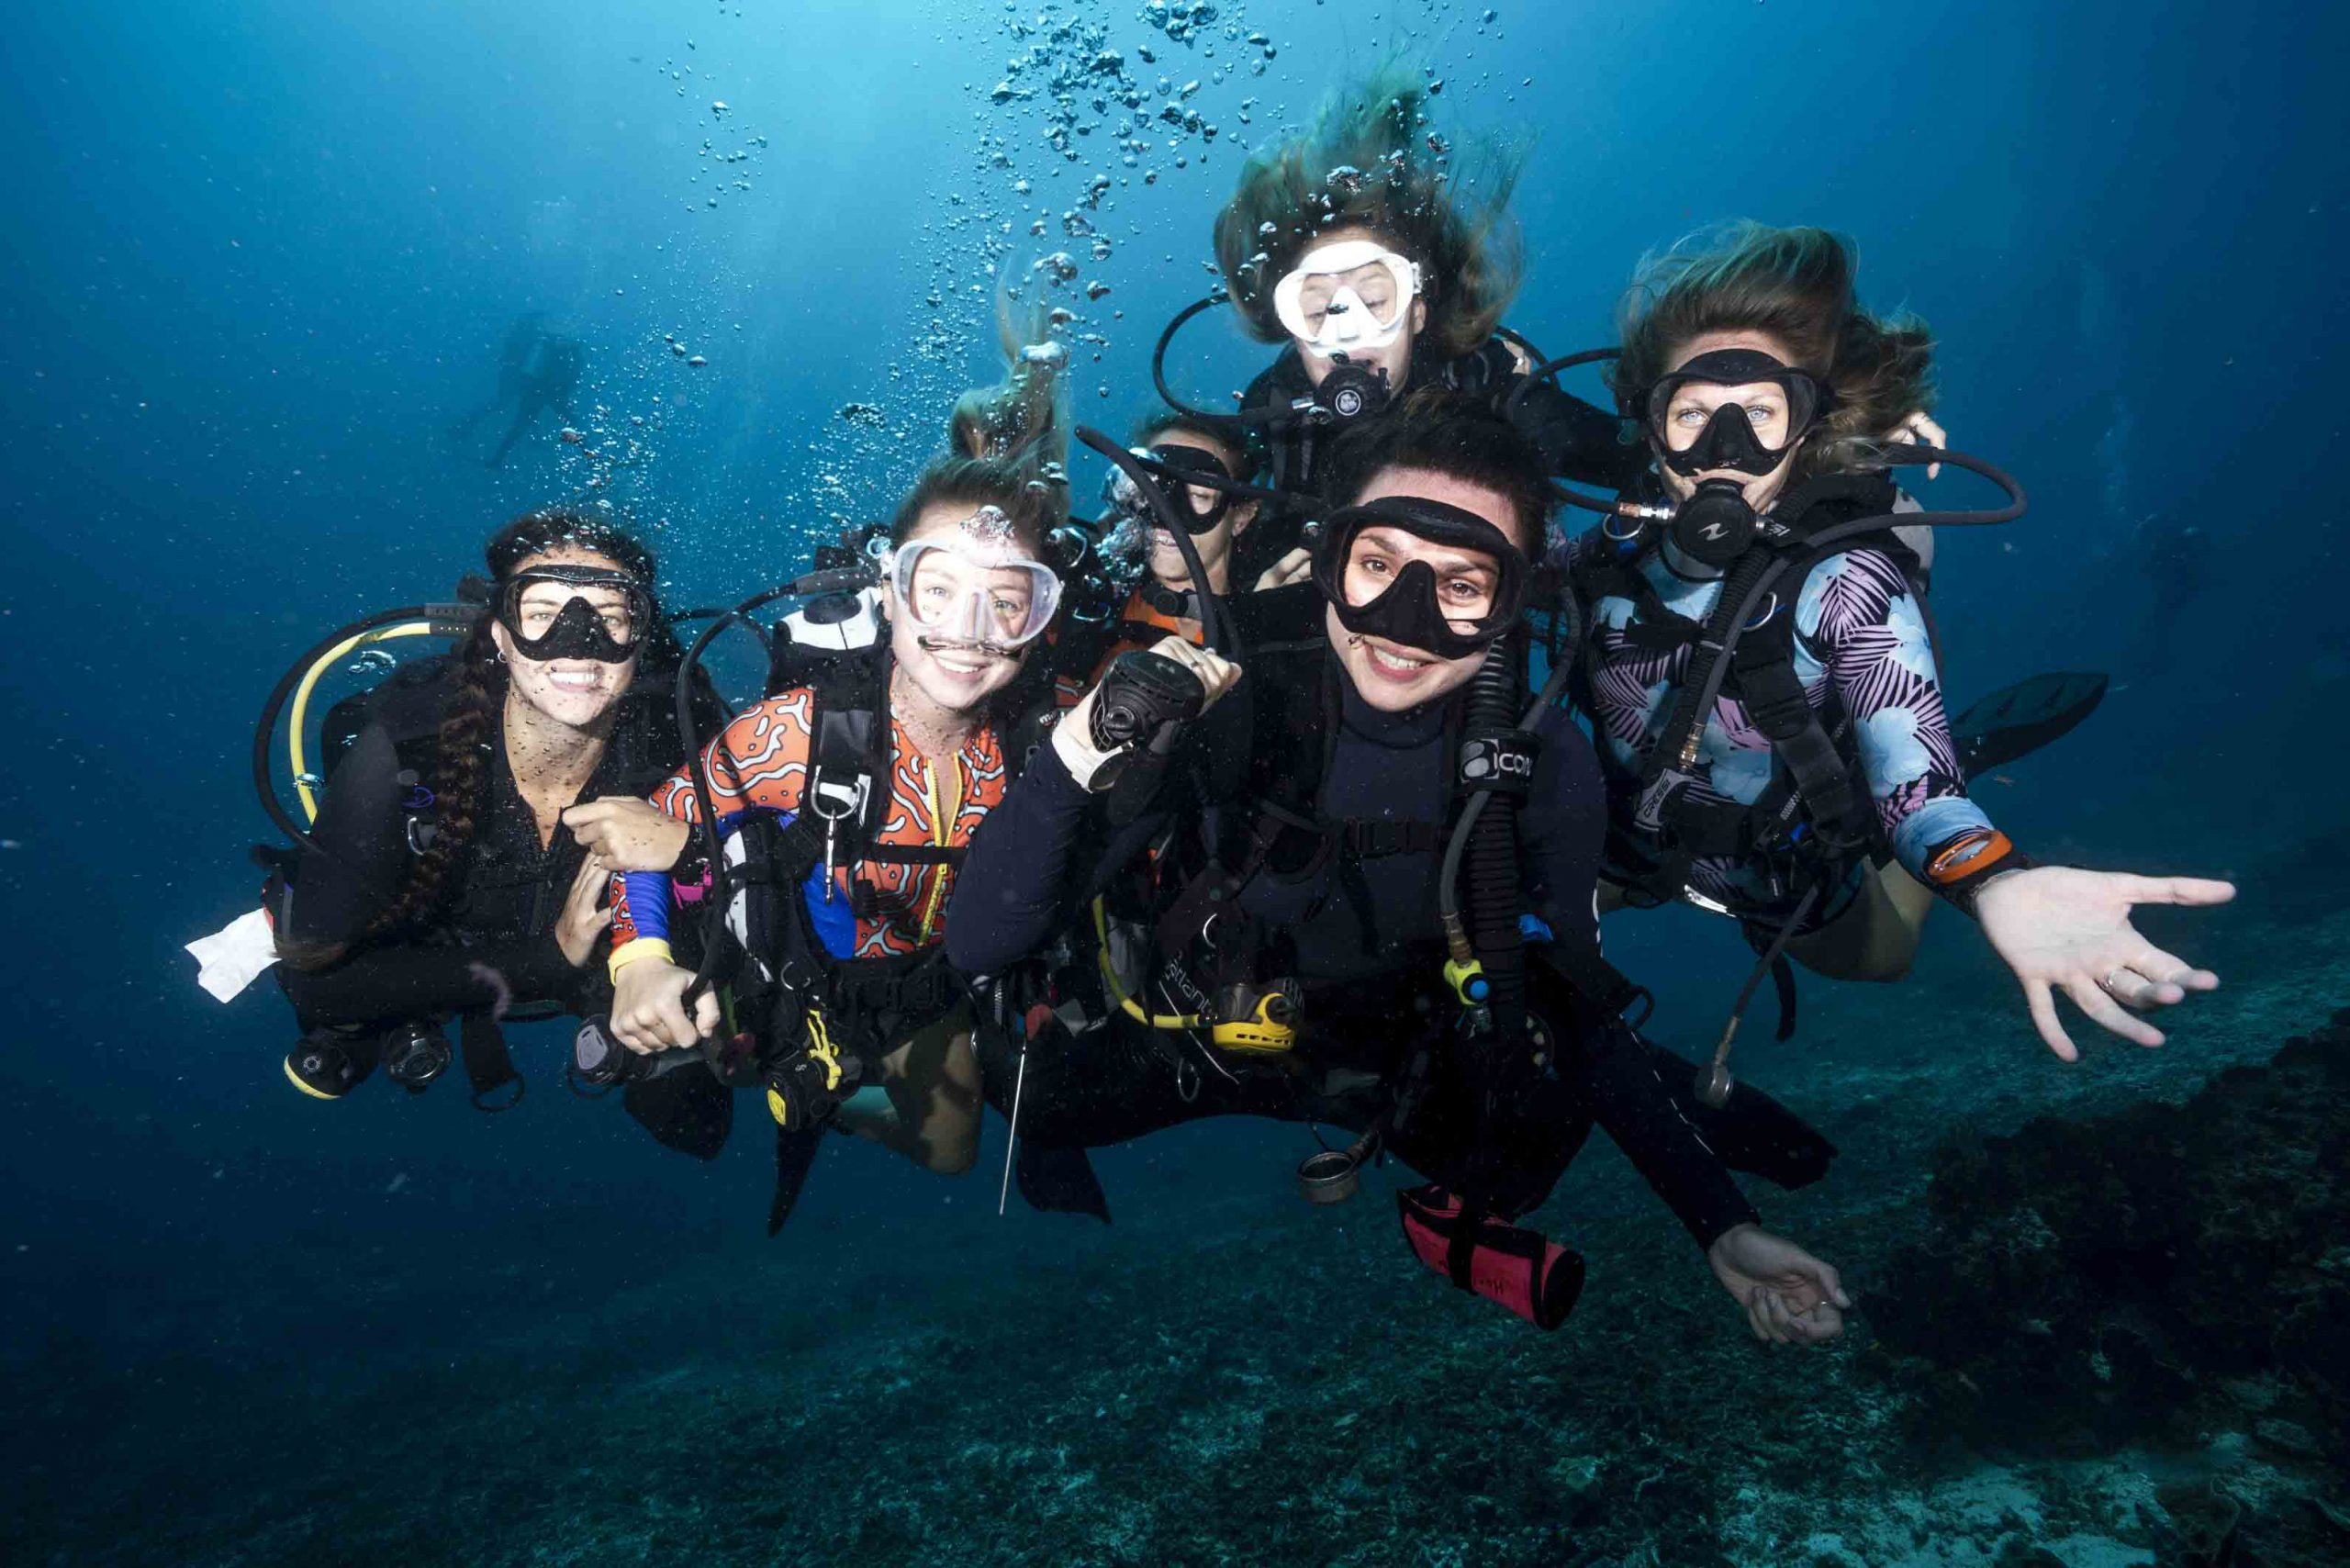 SCUBA diving career development program in South Africa